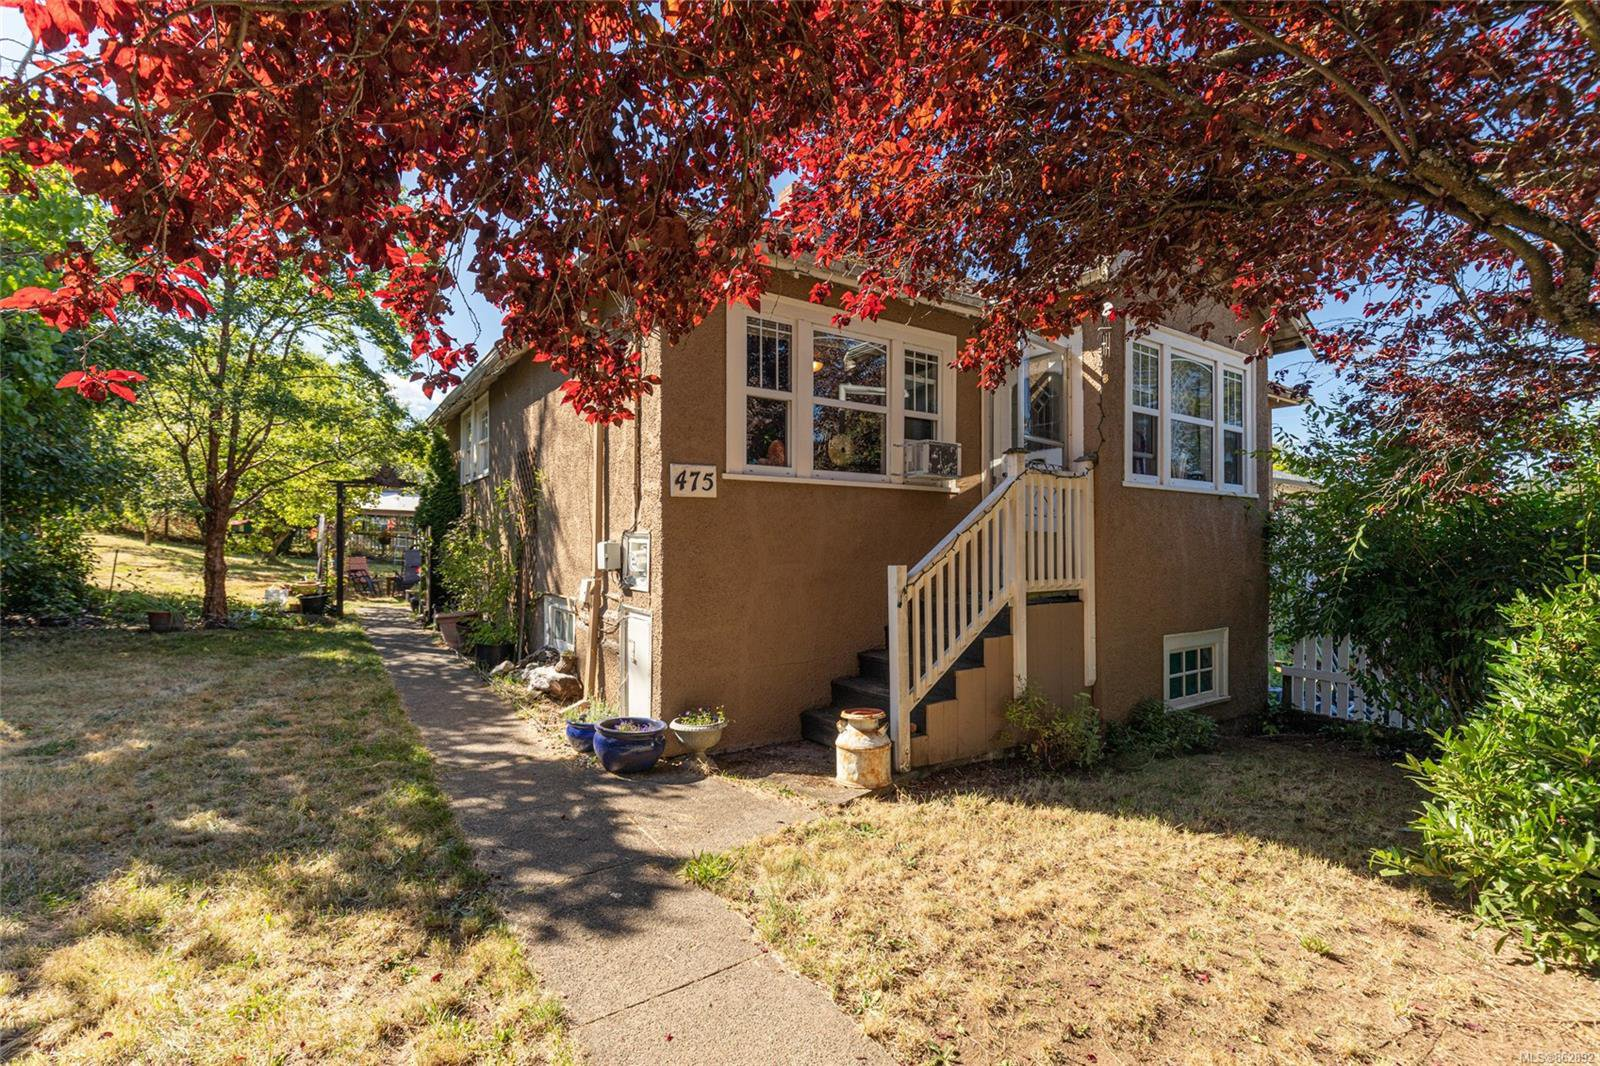 Main Photo: 475 Hamilton Ave in : Na South Nanaimo House for sale (Nanaimo)  : MLS®# 862892